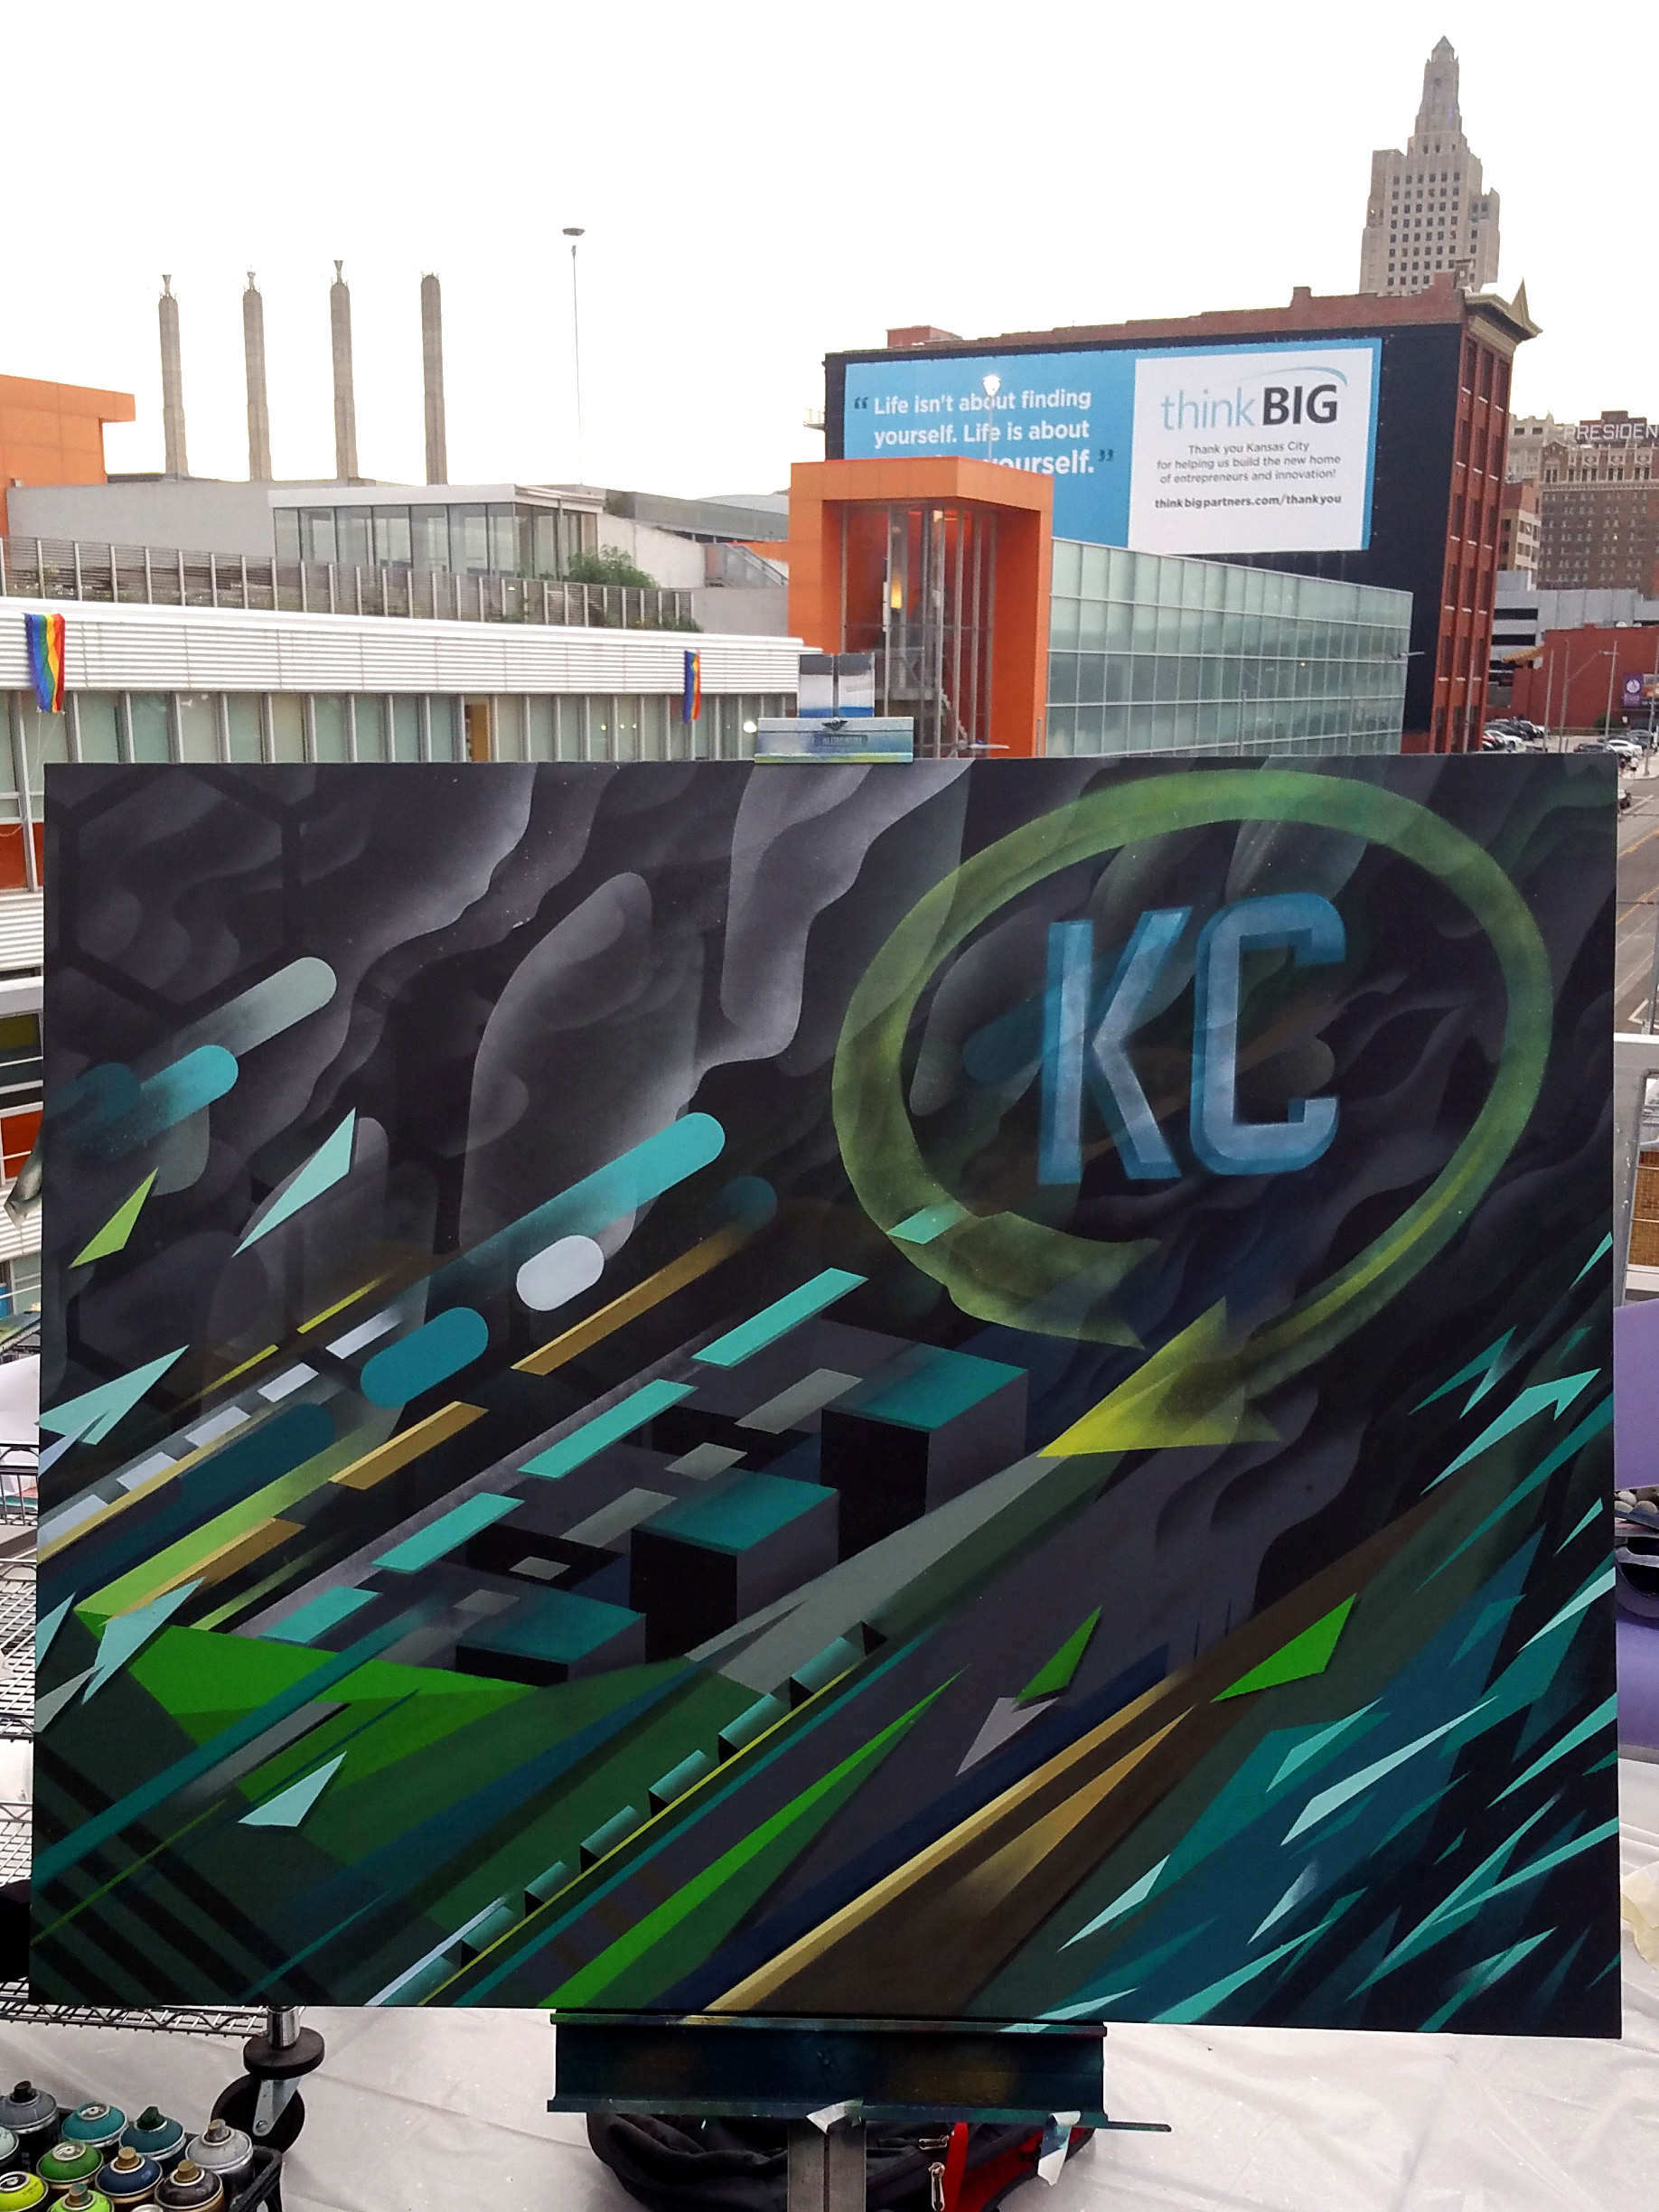 Sike style industries live event painting 4 x 5 canvas painted for henderson engineering june 23rd kansas city mo 2016 solutioingenieria Image collections